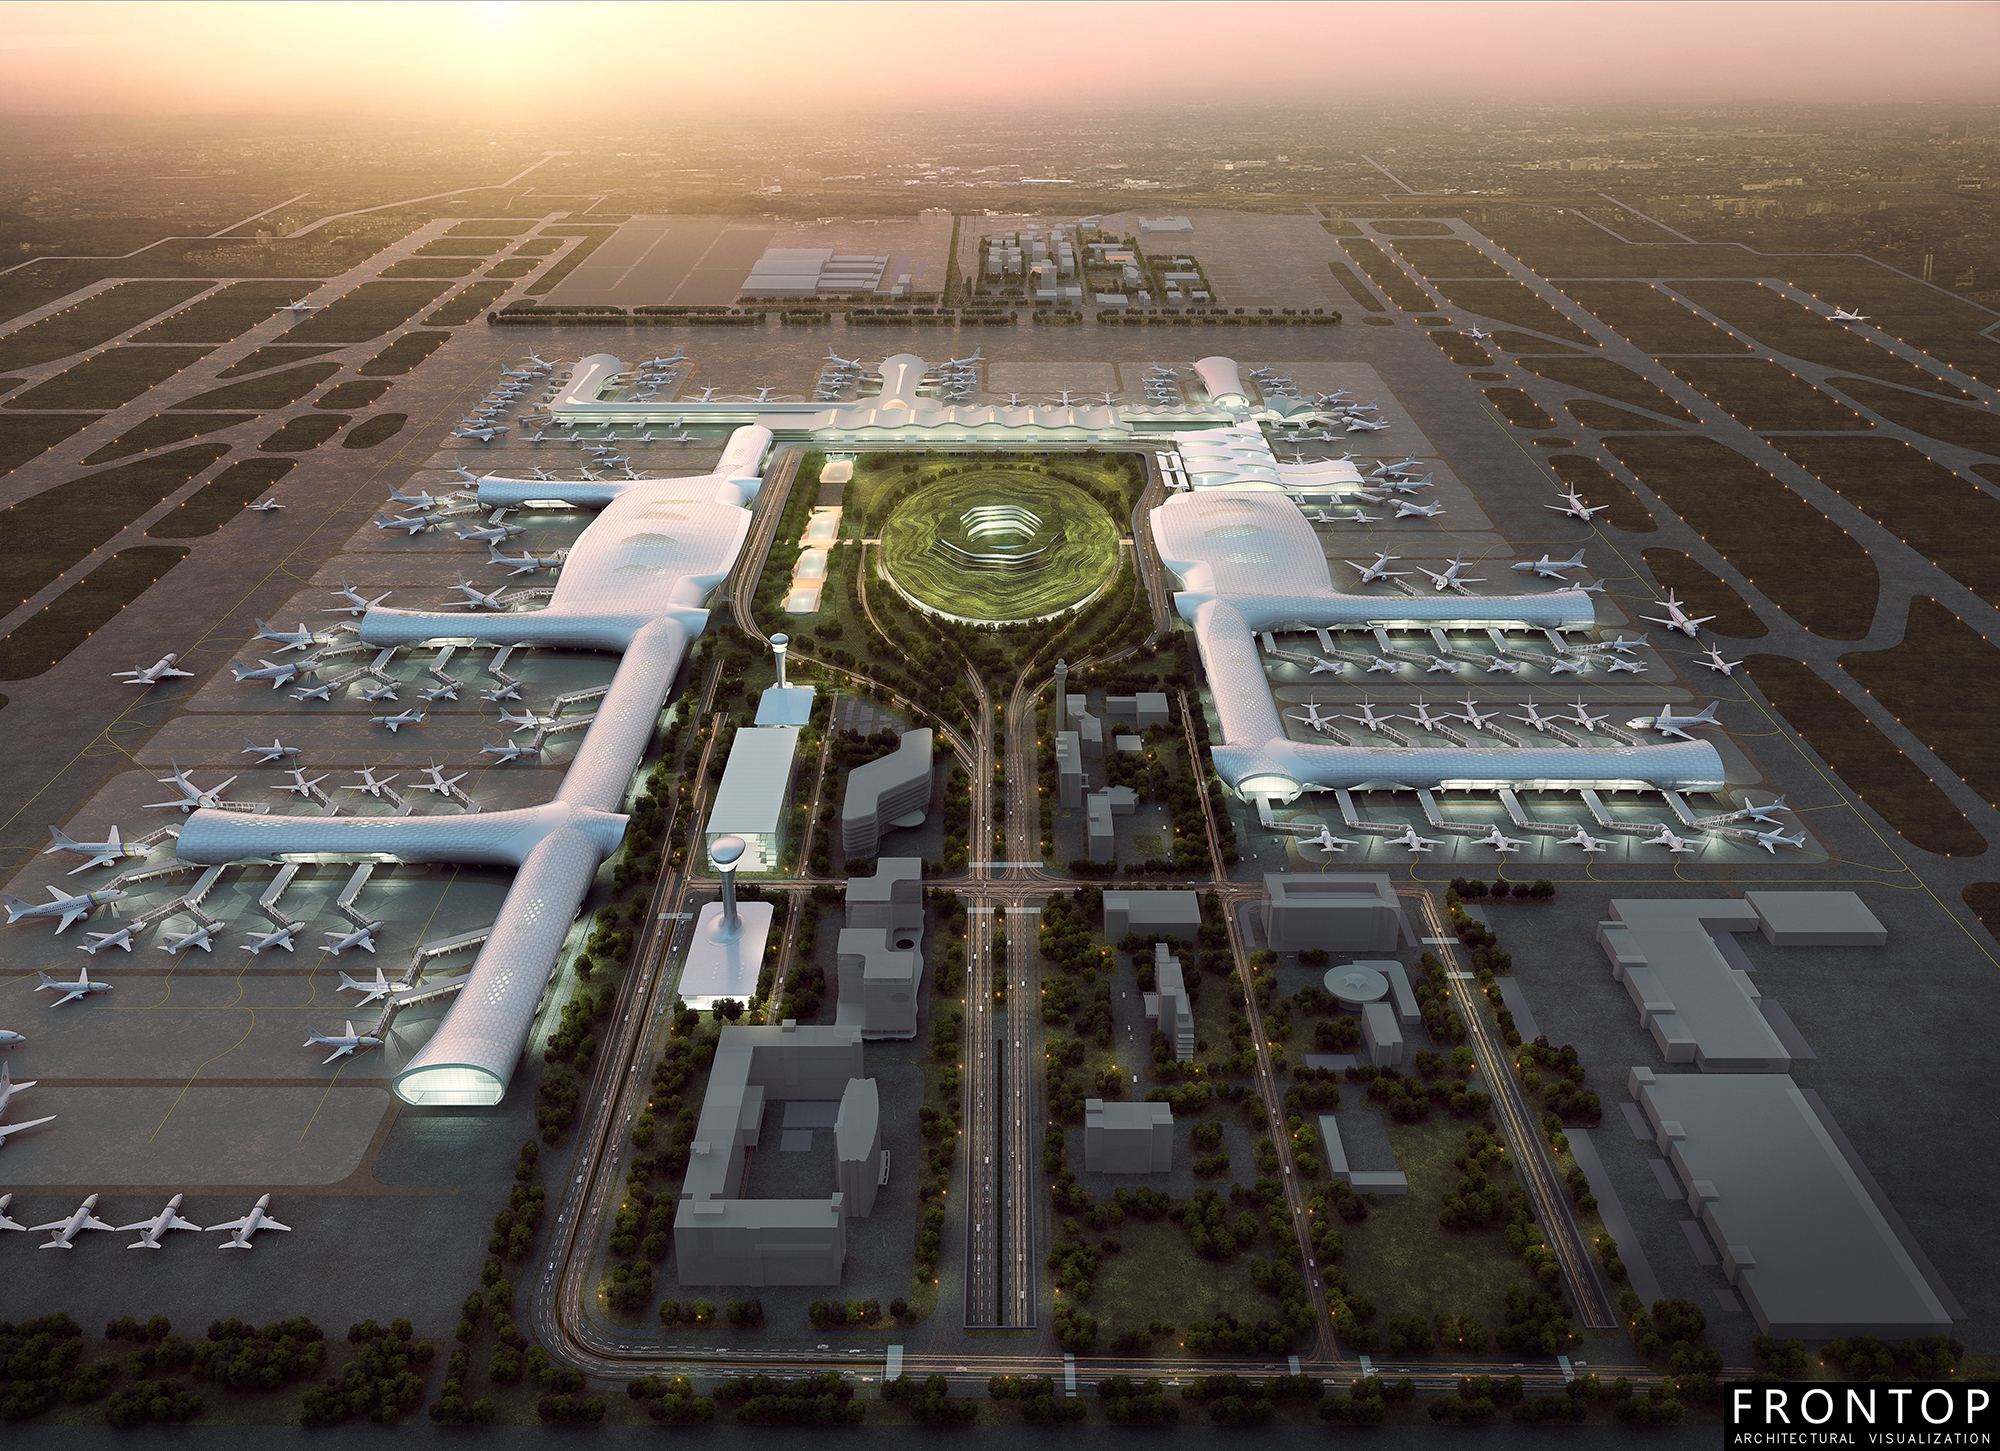 2017 Good Quality 3d Rendering+A9:A44 - Airport – Frontop